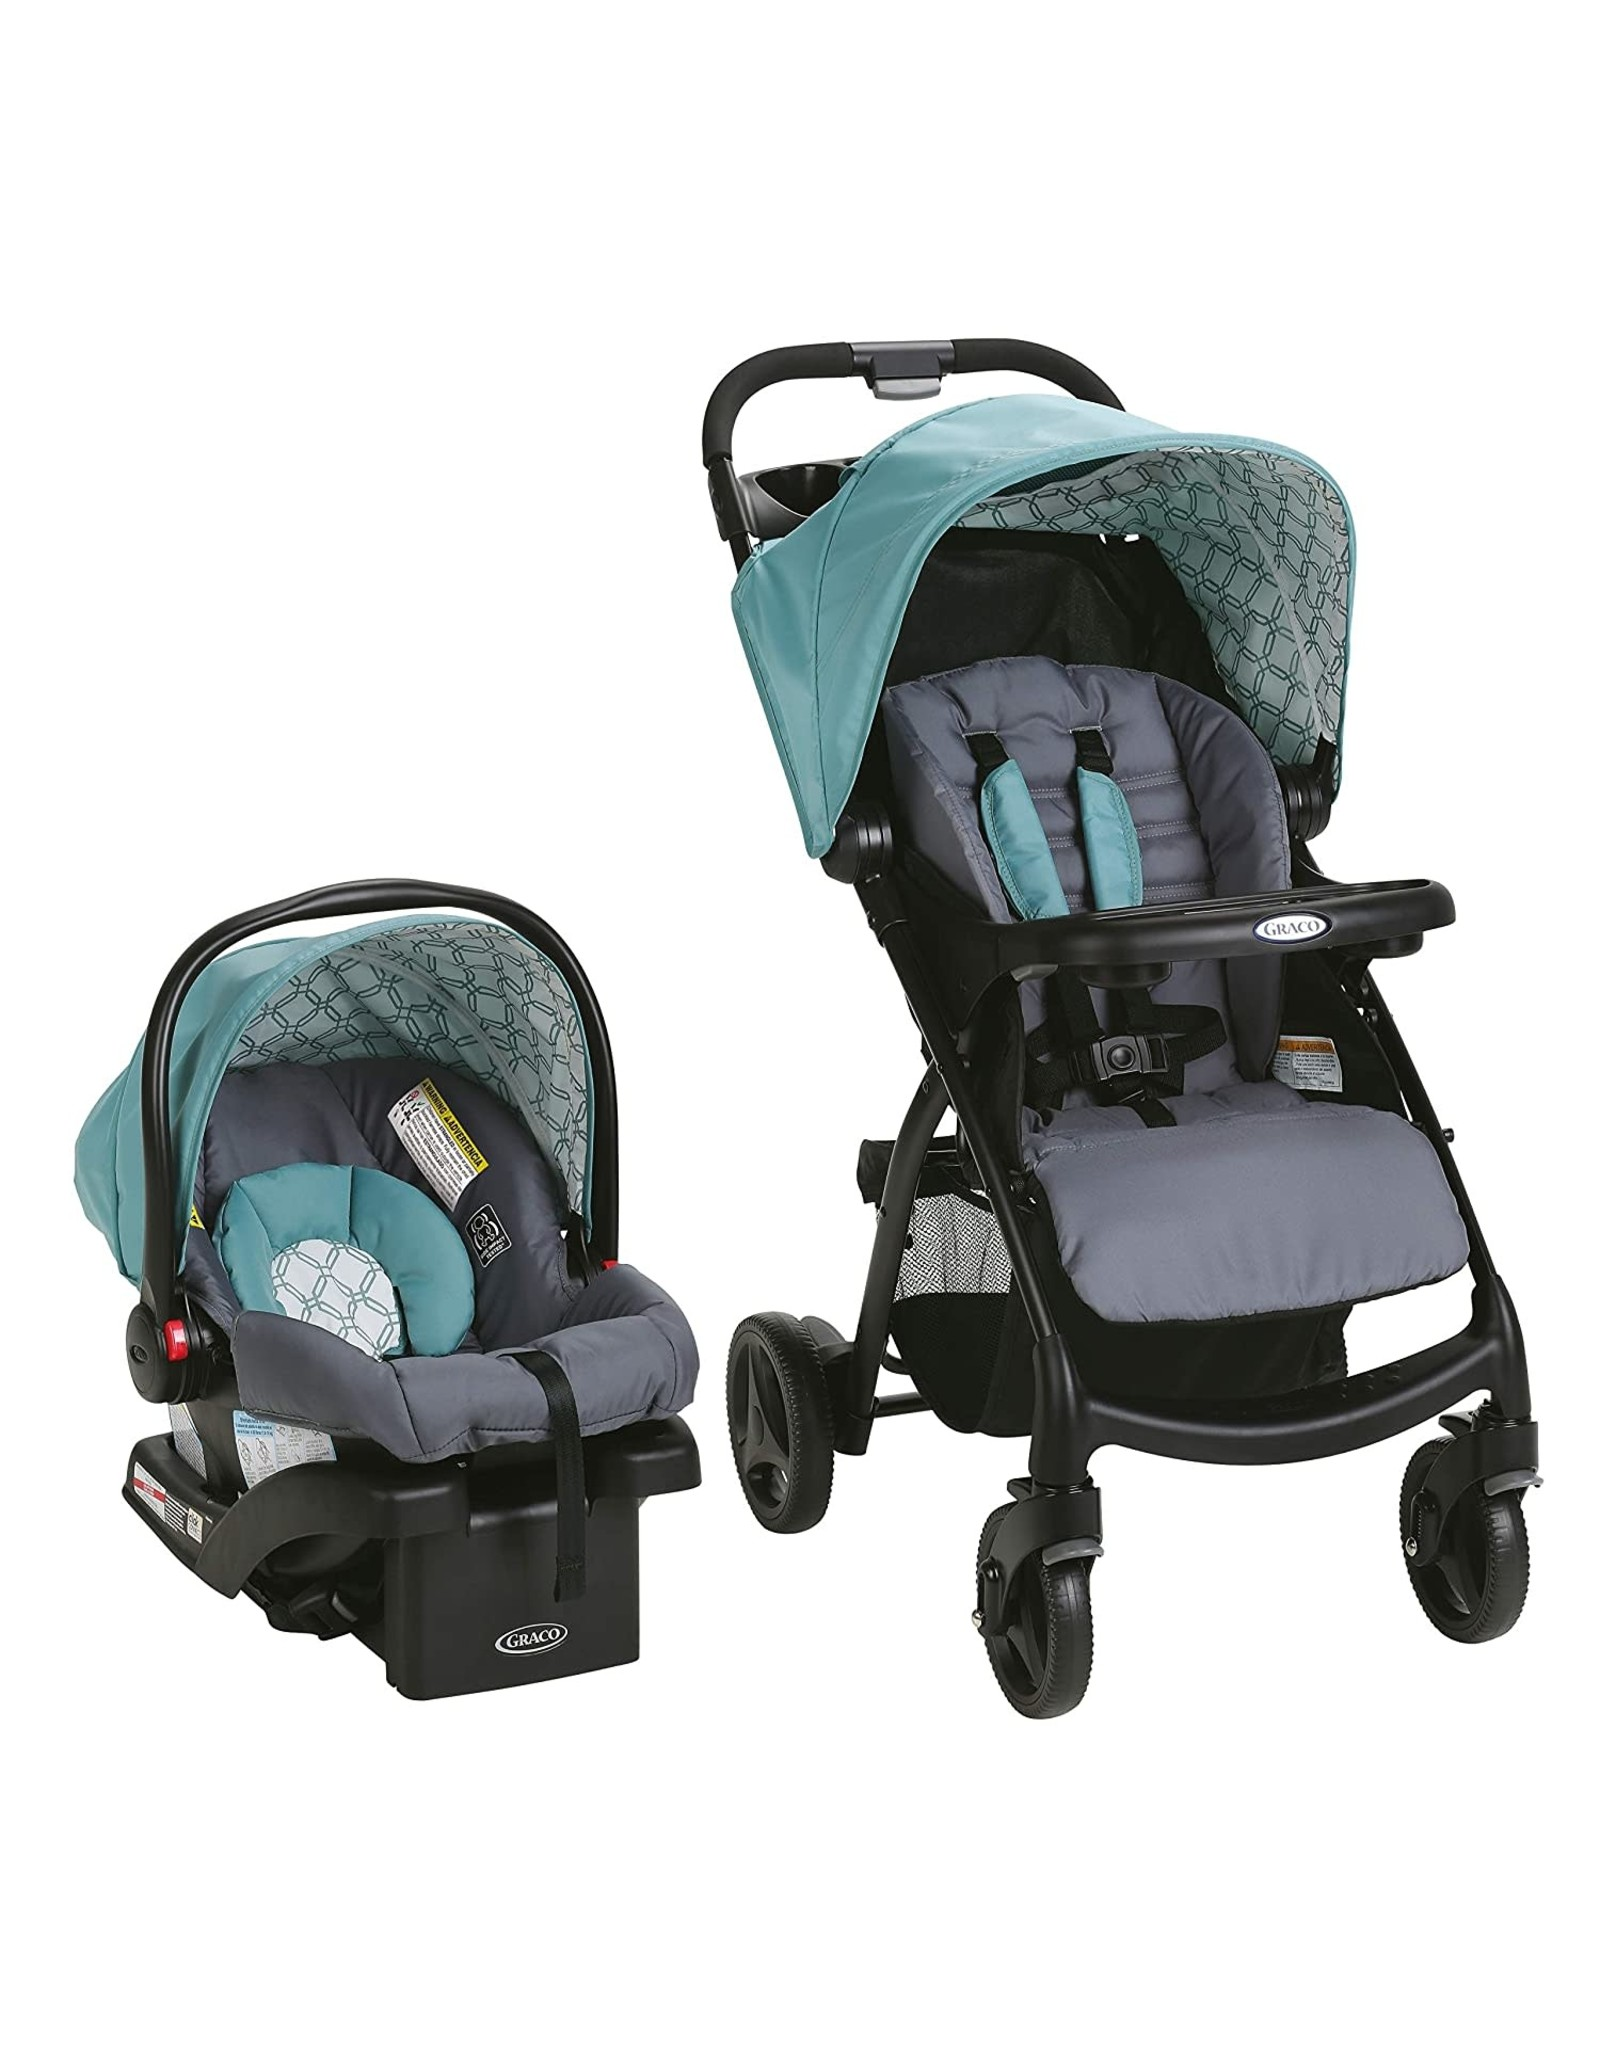 Graco Graco Verb Travel System   Includes Verb Stroller and SnugRide 30 Infant Car Seat, Merrick